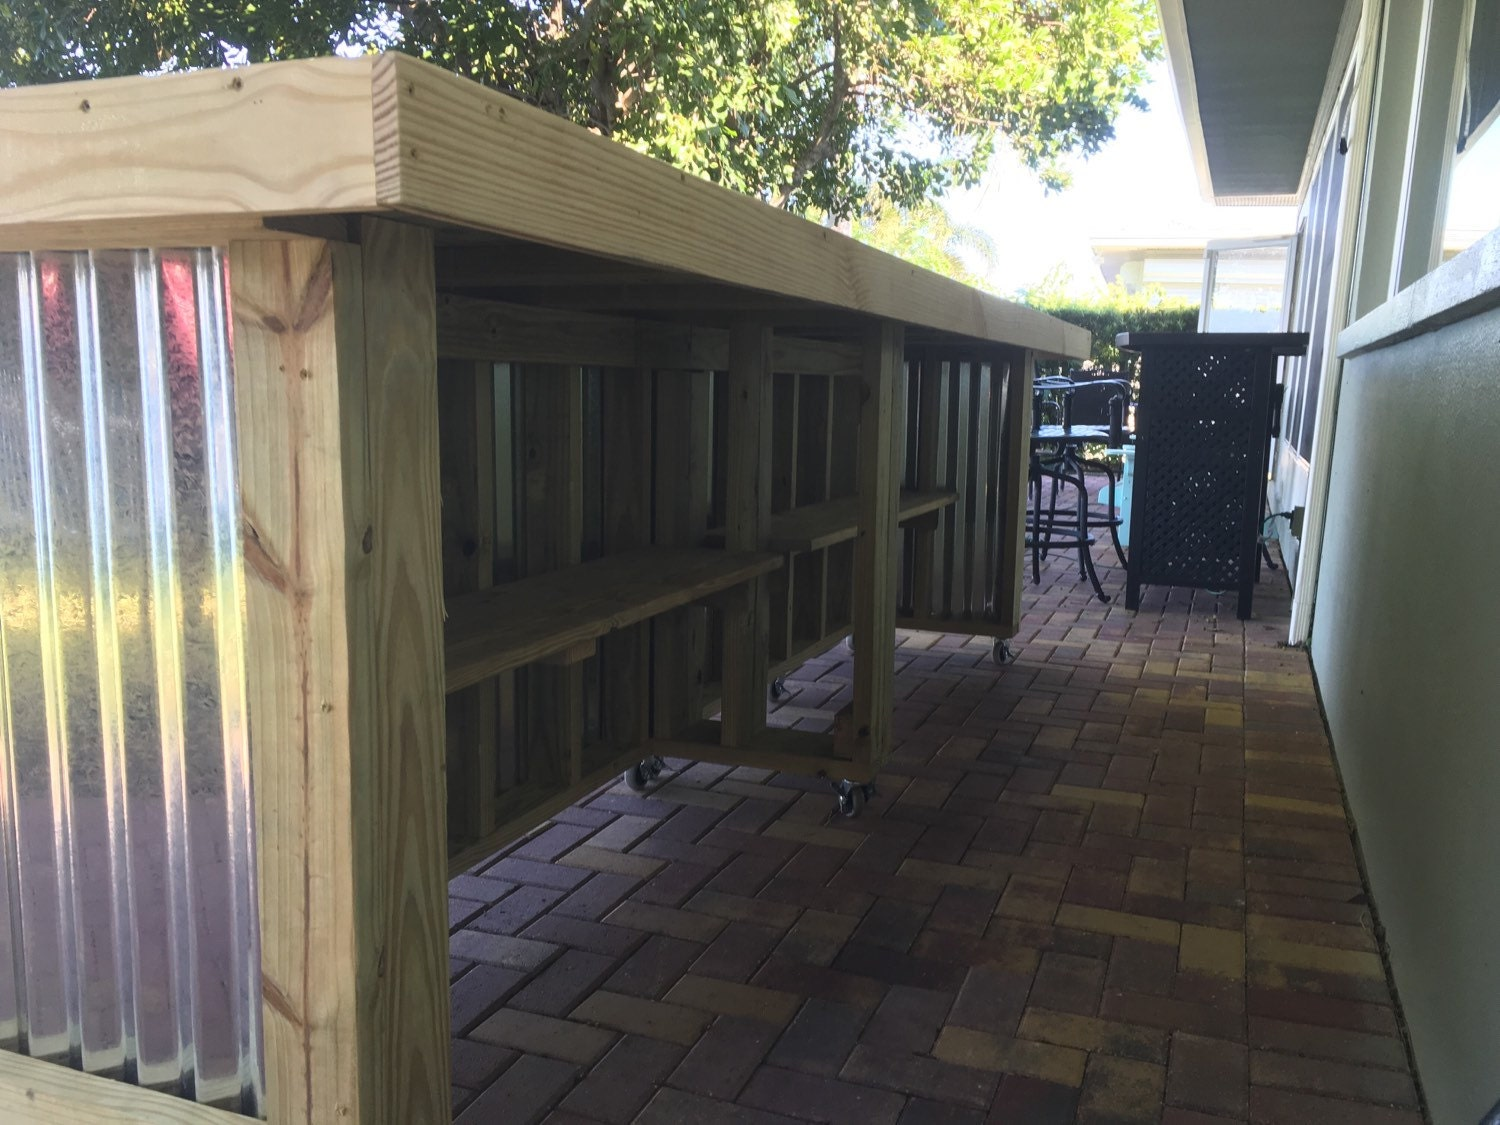 The Beer Pong 12 Corrugated Metal Rustic Outdoor Patio Bar